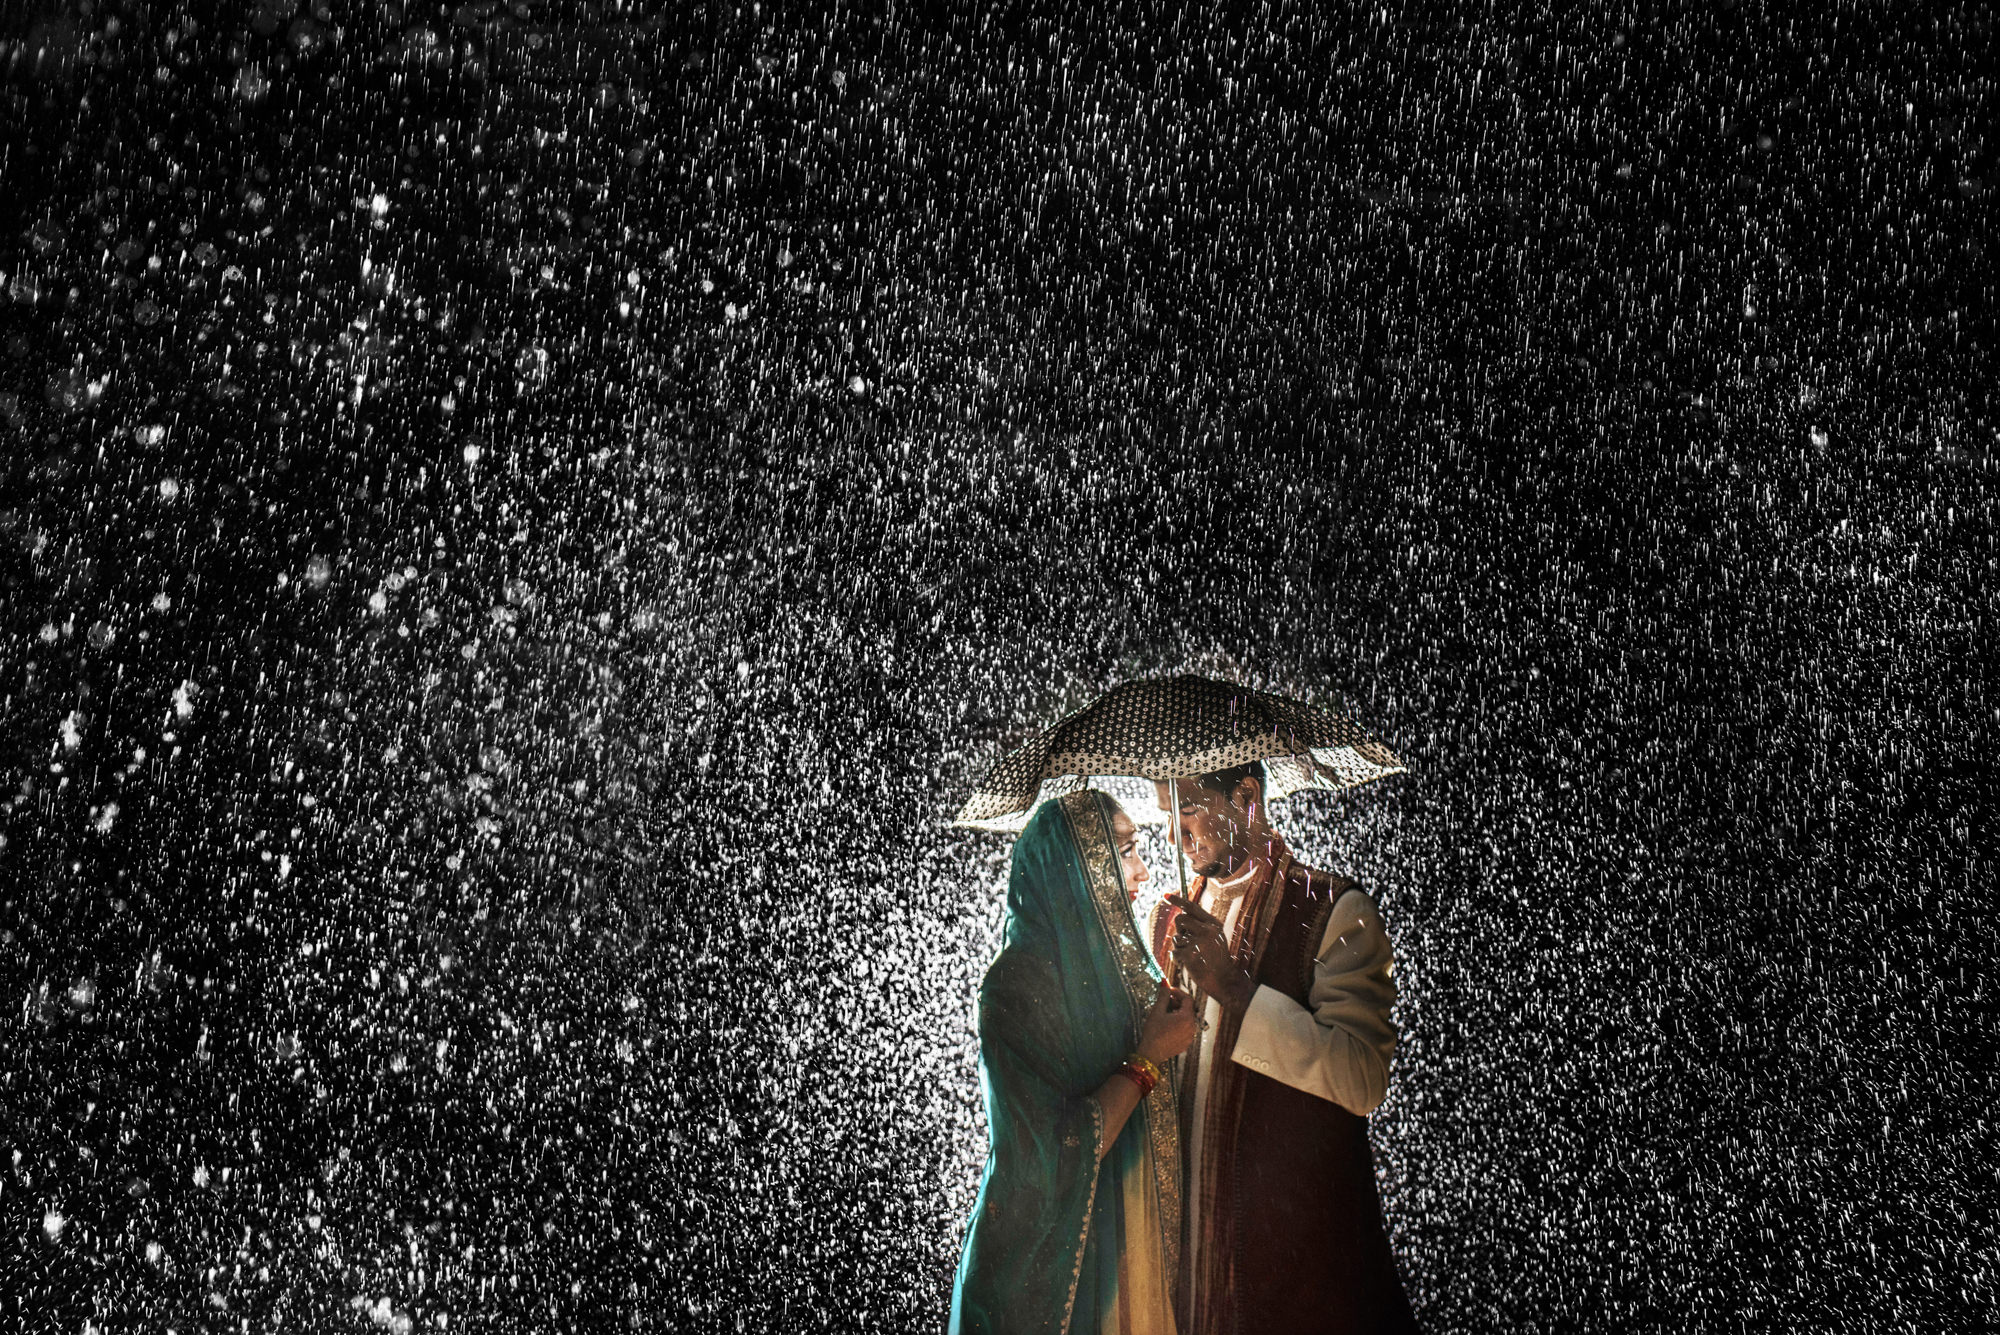 Indian couple in pouring rain under umbrella - photo by Look Fotographica